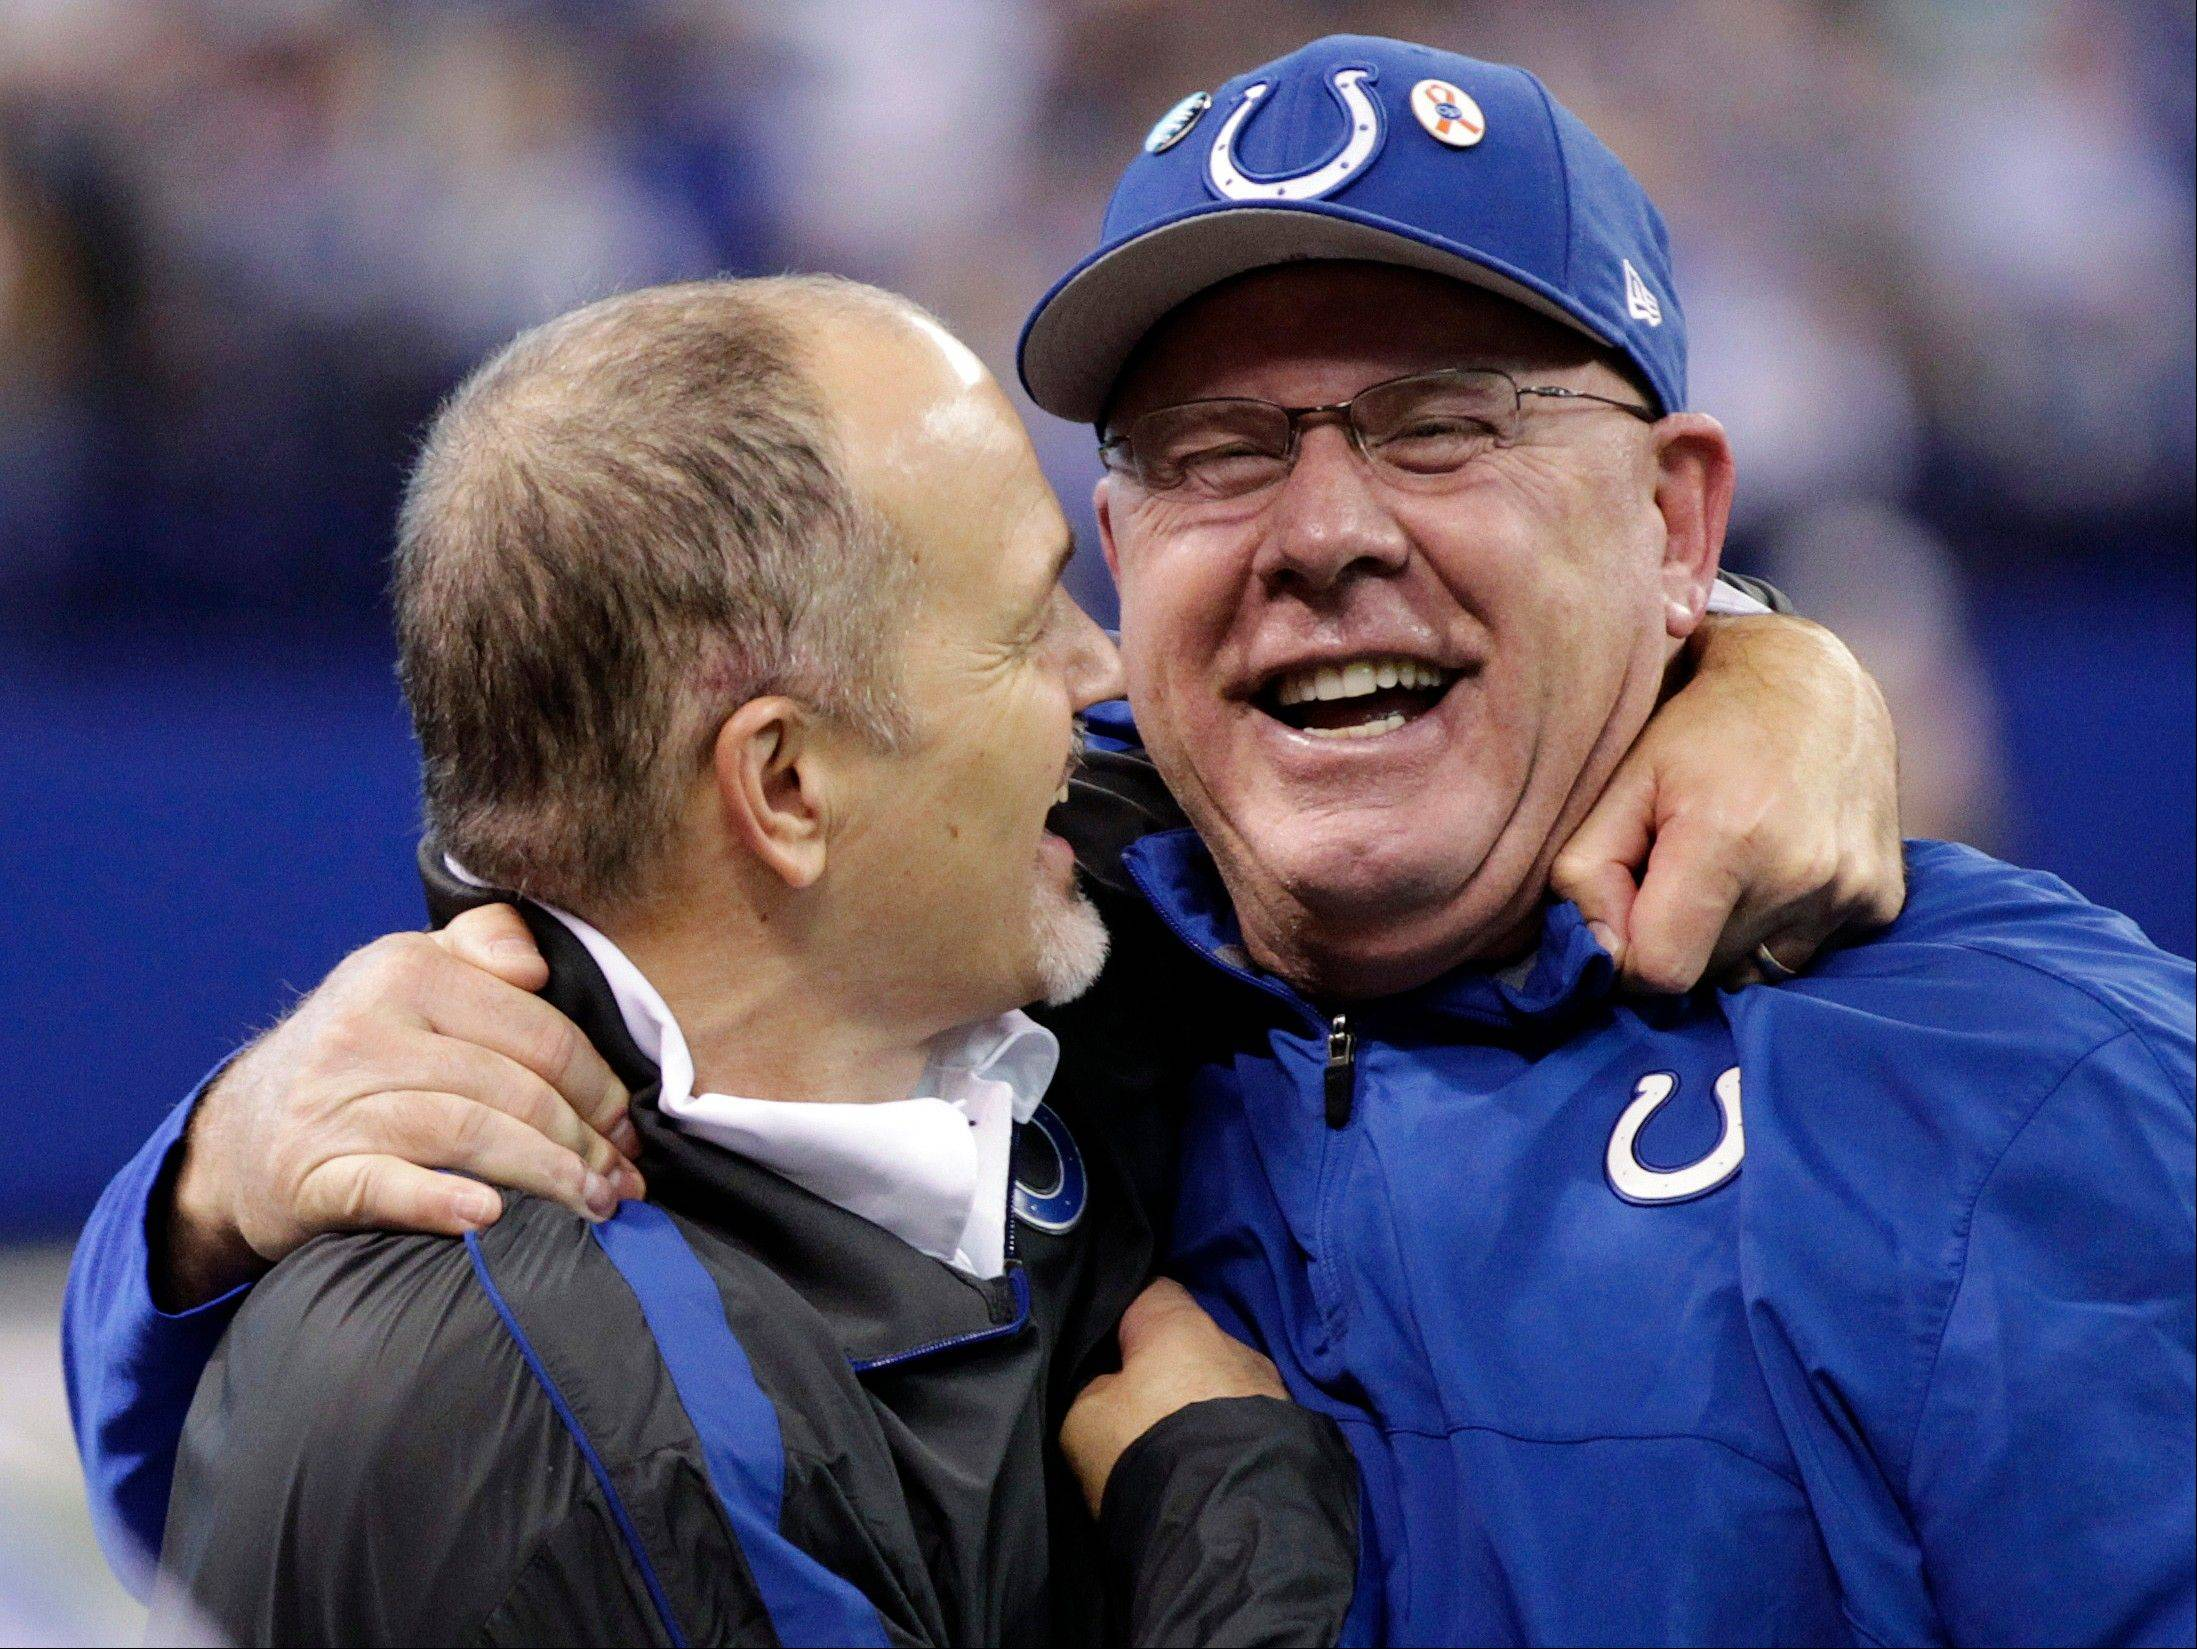 Indianapolis Colts head coach Chuck Pagano, left, celebrates with offensive coordinator Bruce Arians after their 28-16 win over the Houston Texans on Dec. 30. The Bears reportedly have asked permission to interview Arians for their head coaching position.